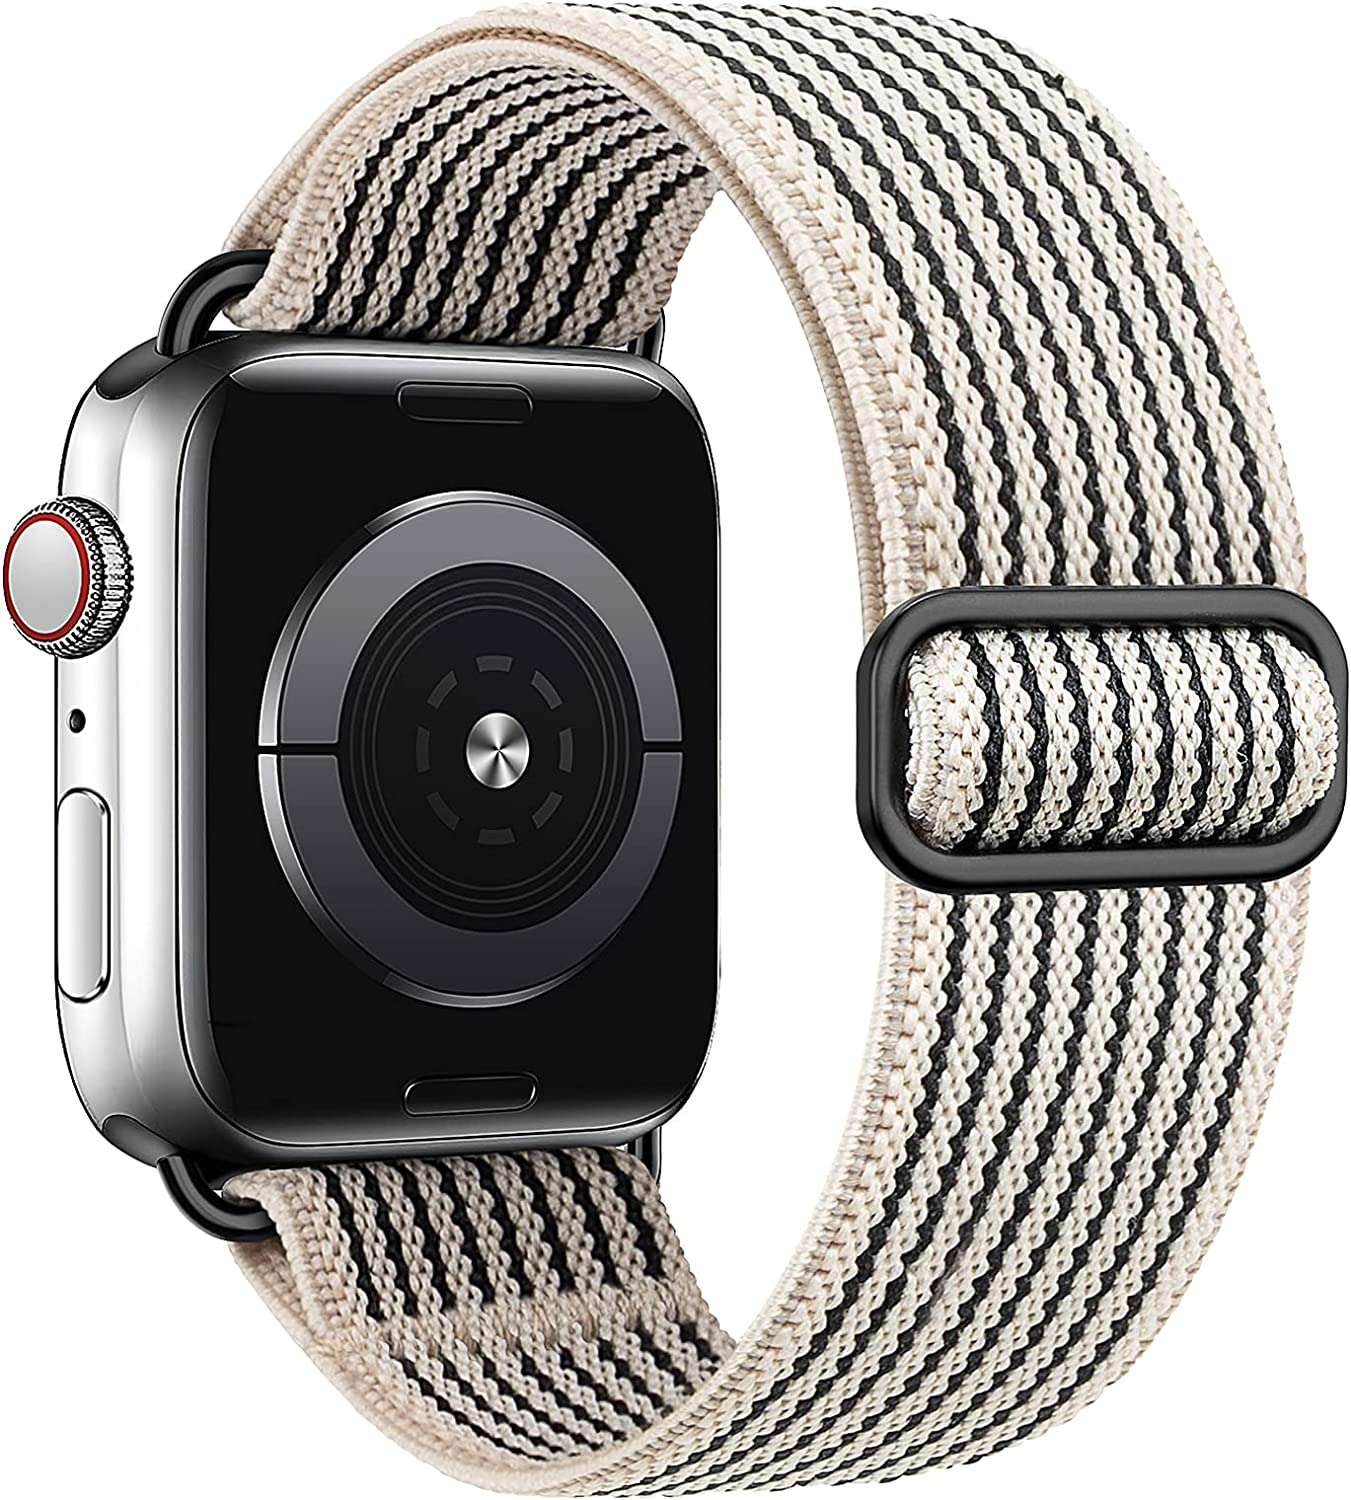 MEULOT Stretchy Braided Solo Loop Band Compatible with Apple Watch Band 38mm 40mm 42mm 44mm Adjustable Nylon Elastic Sport Women Men Strap Compatible with iWatch Series 6/5/4/3/2/1 SE BlackWS 38/40S